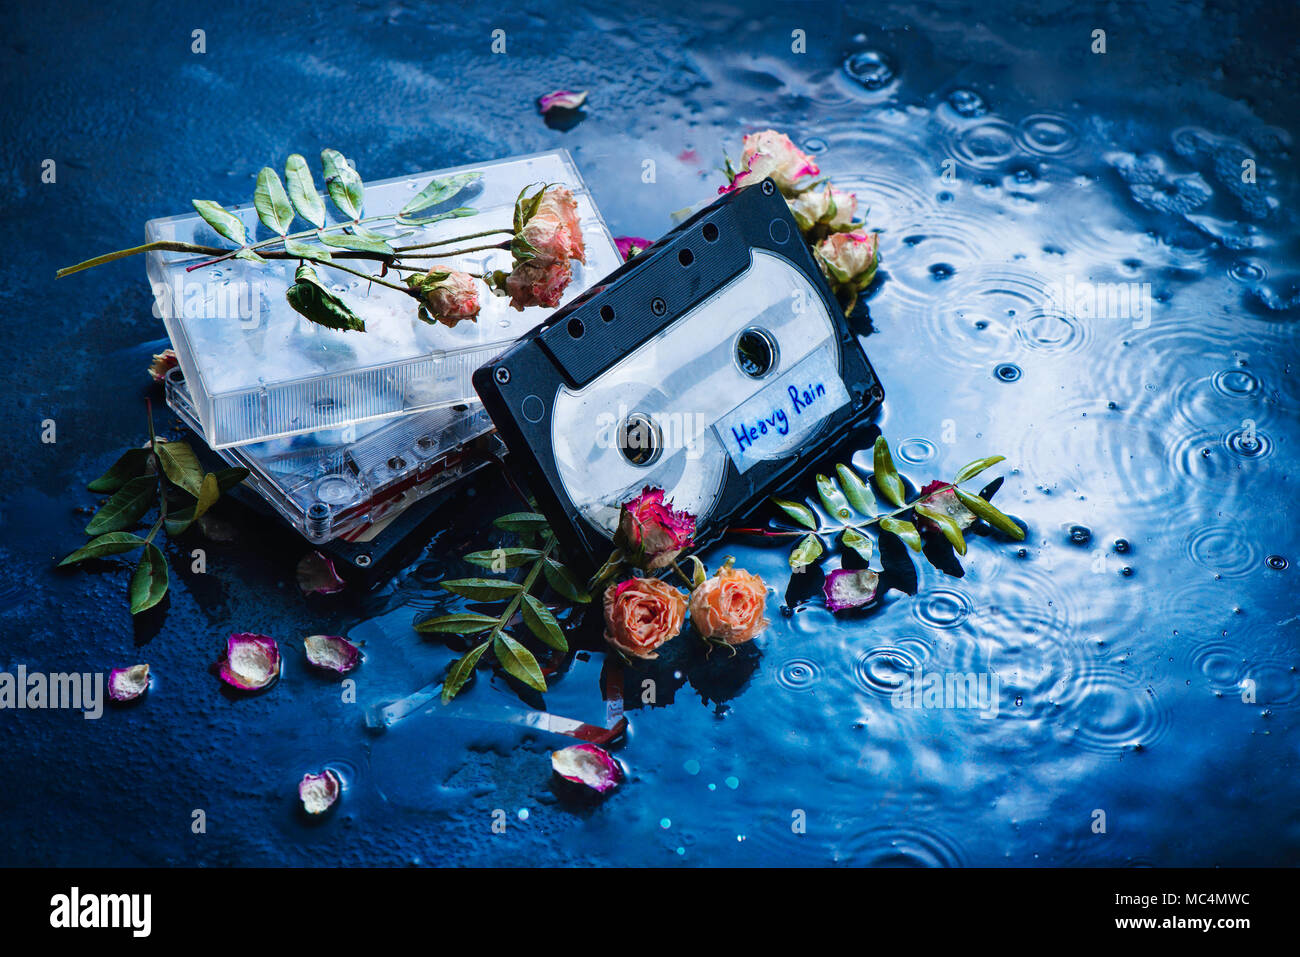 Audio cassette tape with Heavy Rain label in a scene with rose petals and raindrops. Melancholy music for rainy weather. Nostalgia concept copy space. - Stock Image